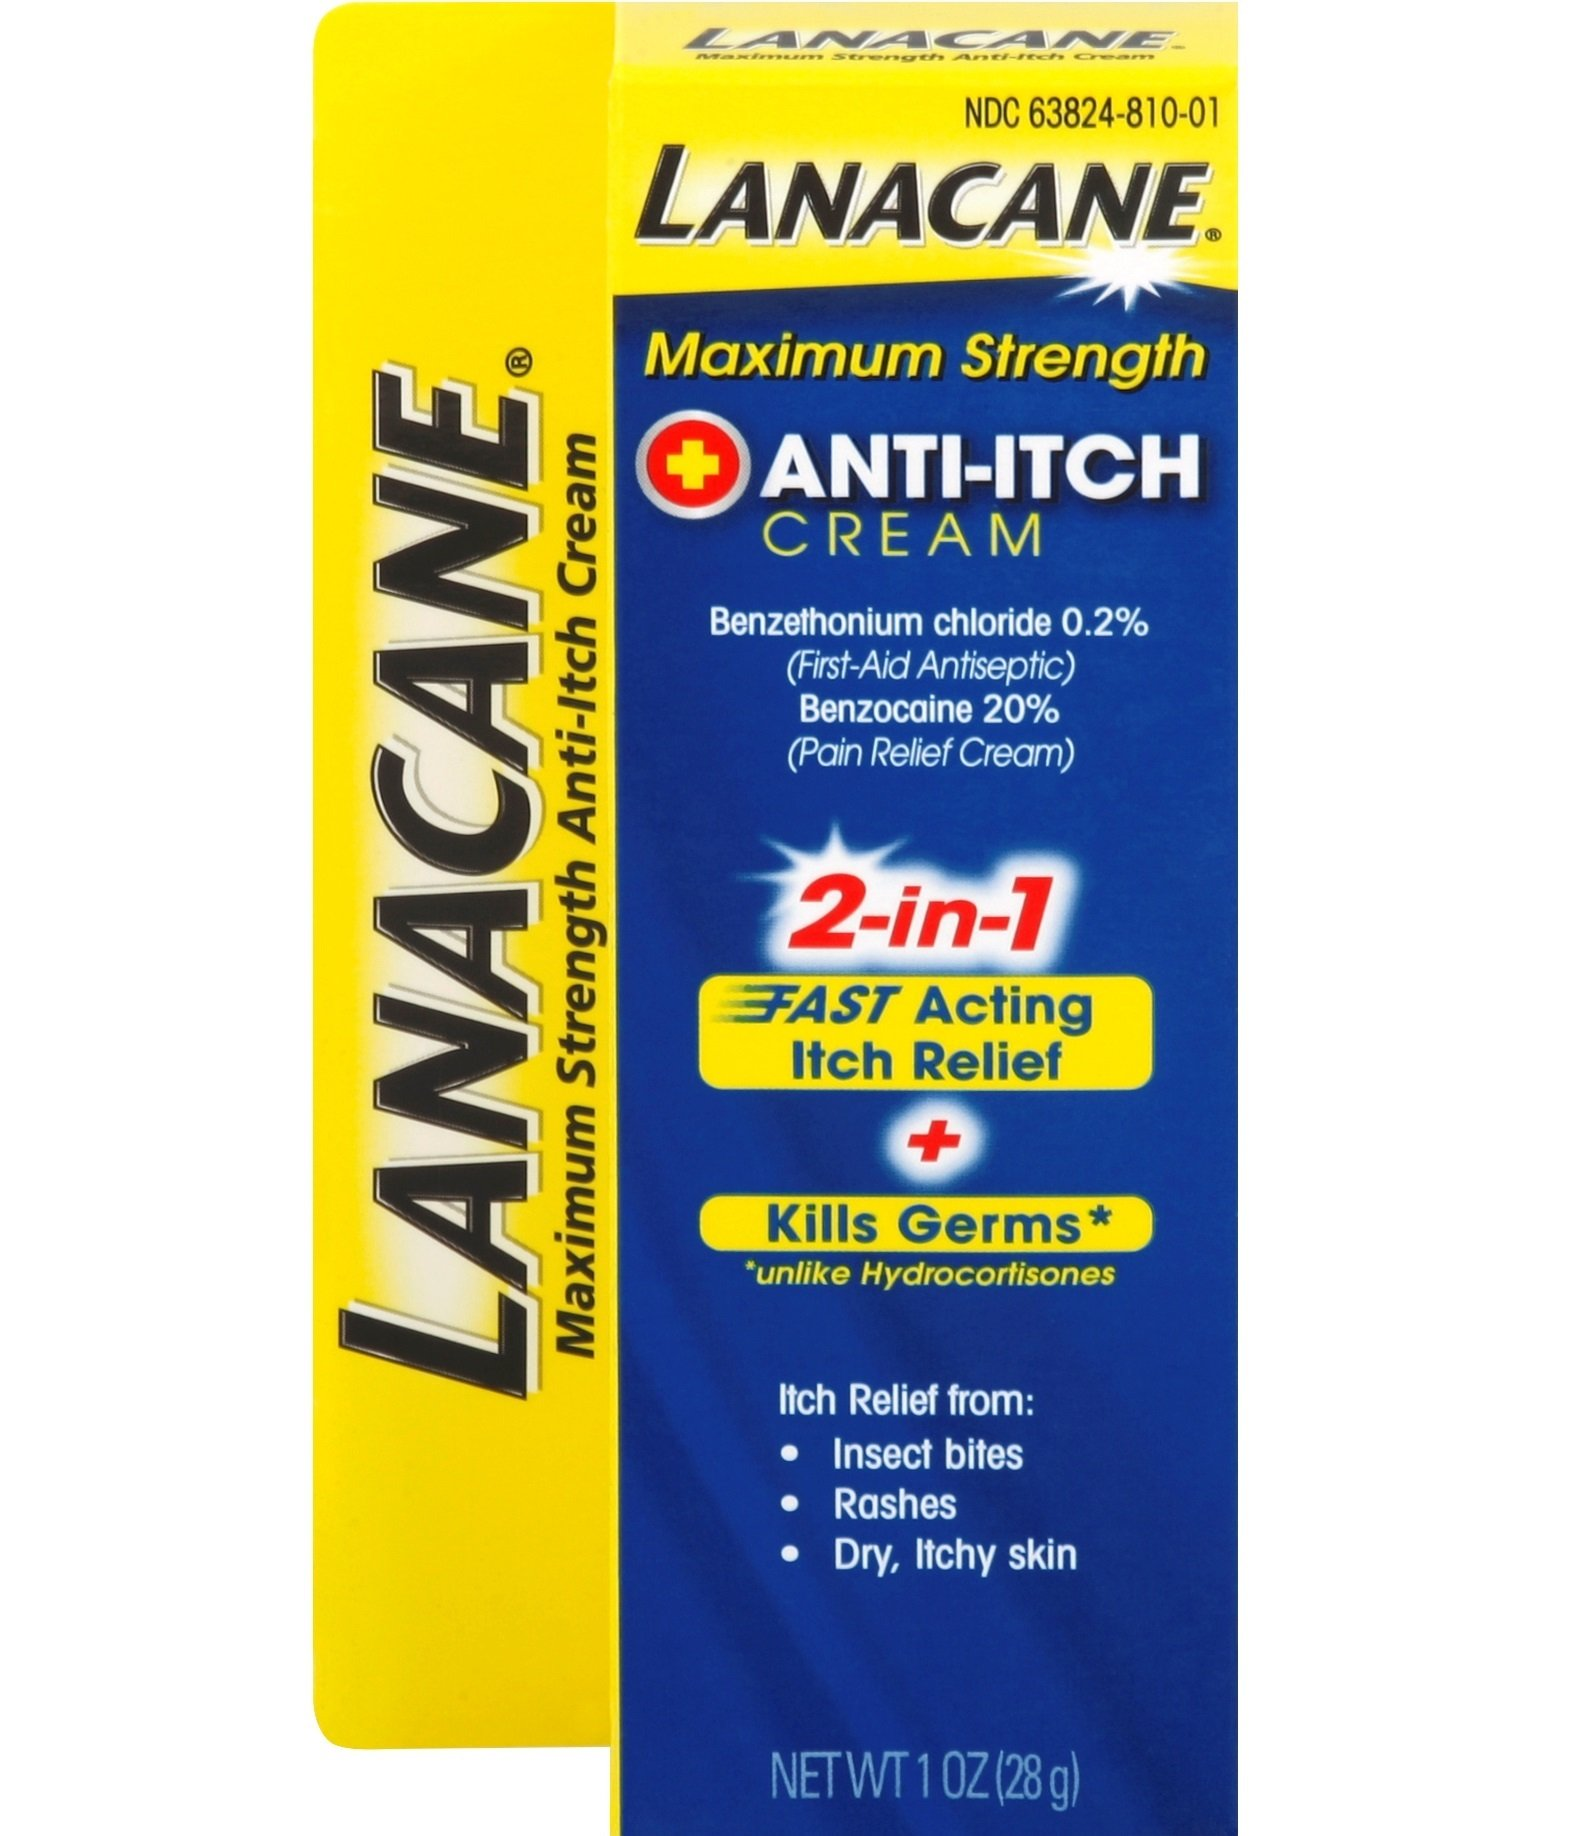 Lanacane Maximum Strength Anti-itch Cream, 1 oz, 2in1 Fast Acting Itch Relief and Kills Germs